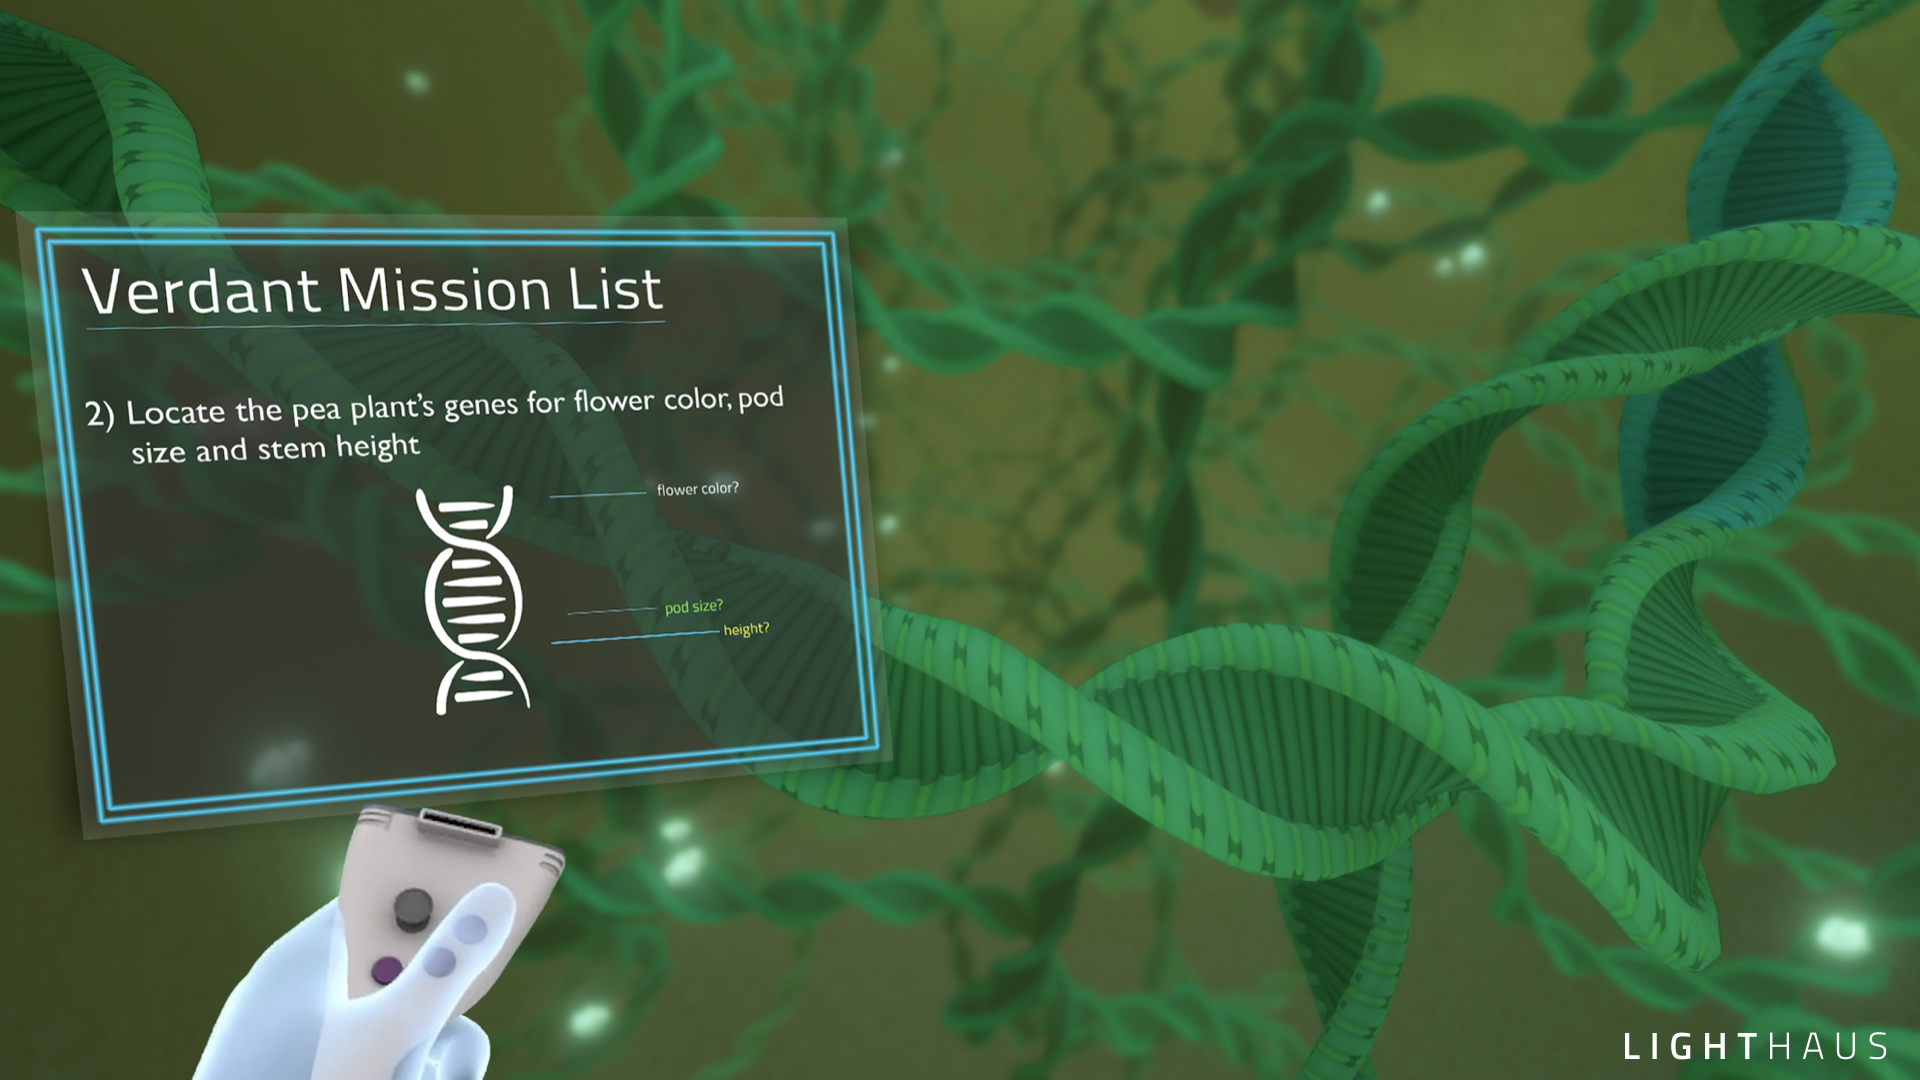 The view from inside the nucleus: A student has entered the pea plants nucleus and is exploring the plant's genome, looking for the locations of the seven traits. The student will perform some genetic substitutions that can offer clues to the relationship between the DNA and the plant's phenotype.